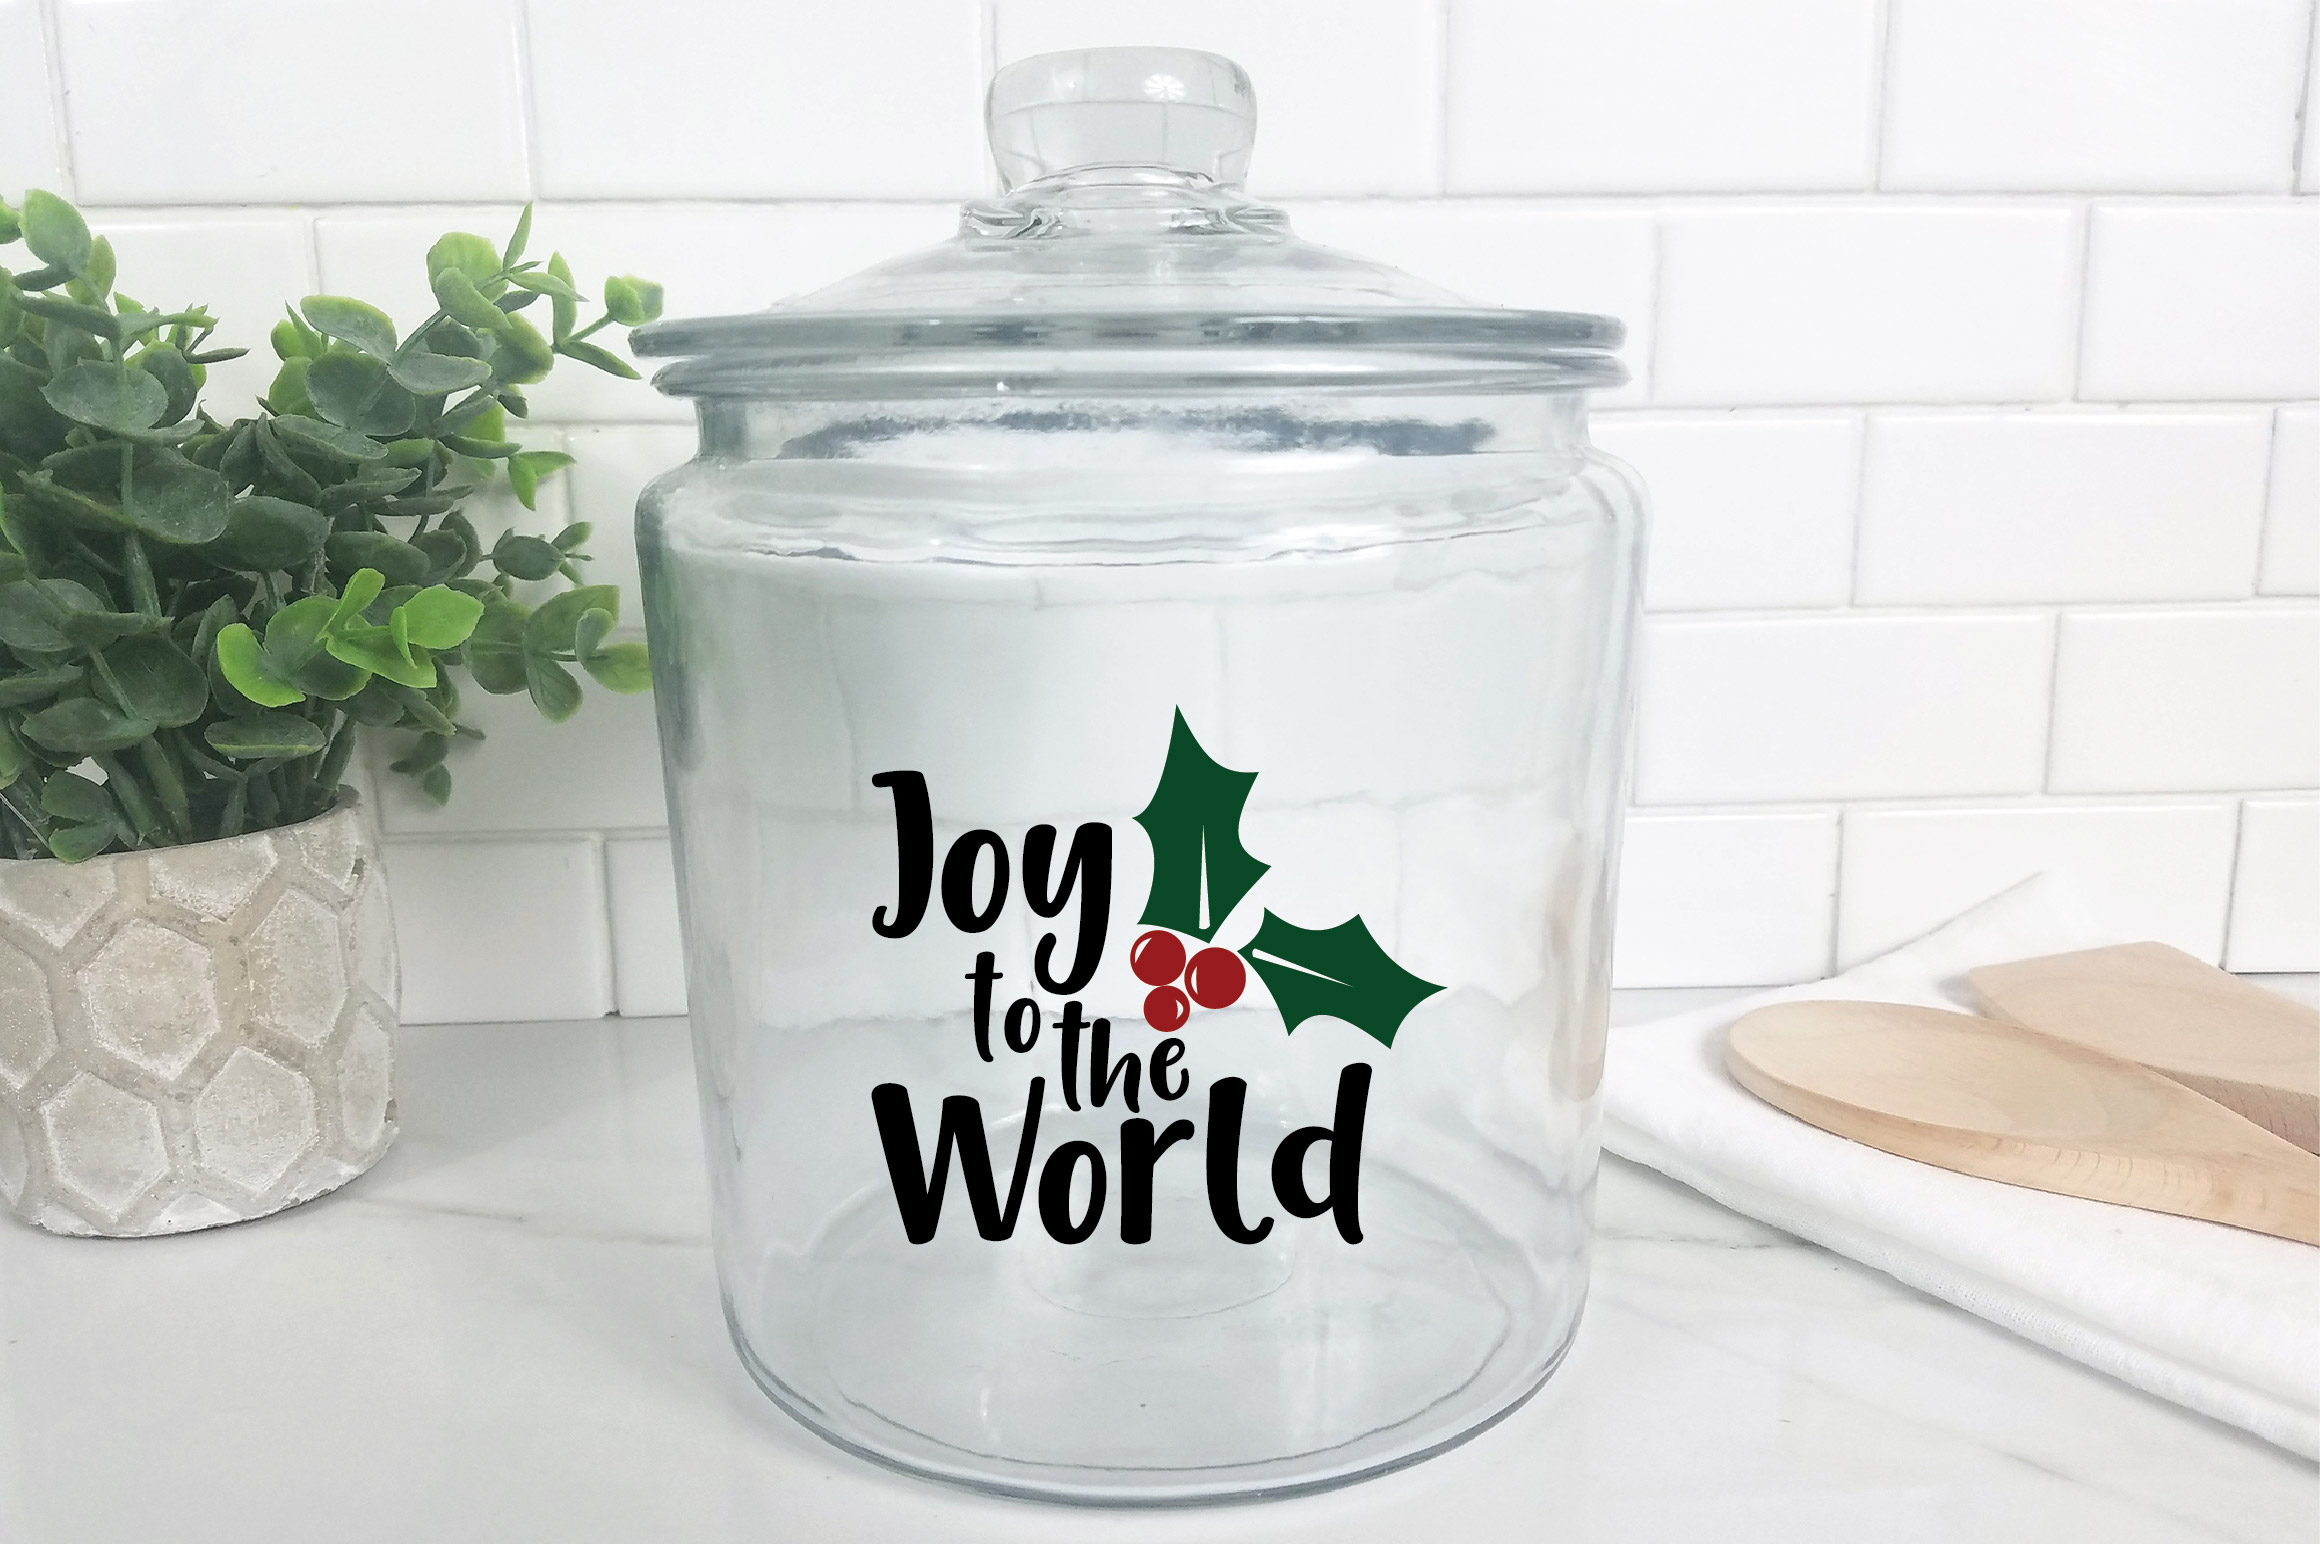 Joy to the World SVG Cut File - Christmas SVG example image 9